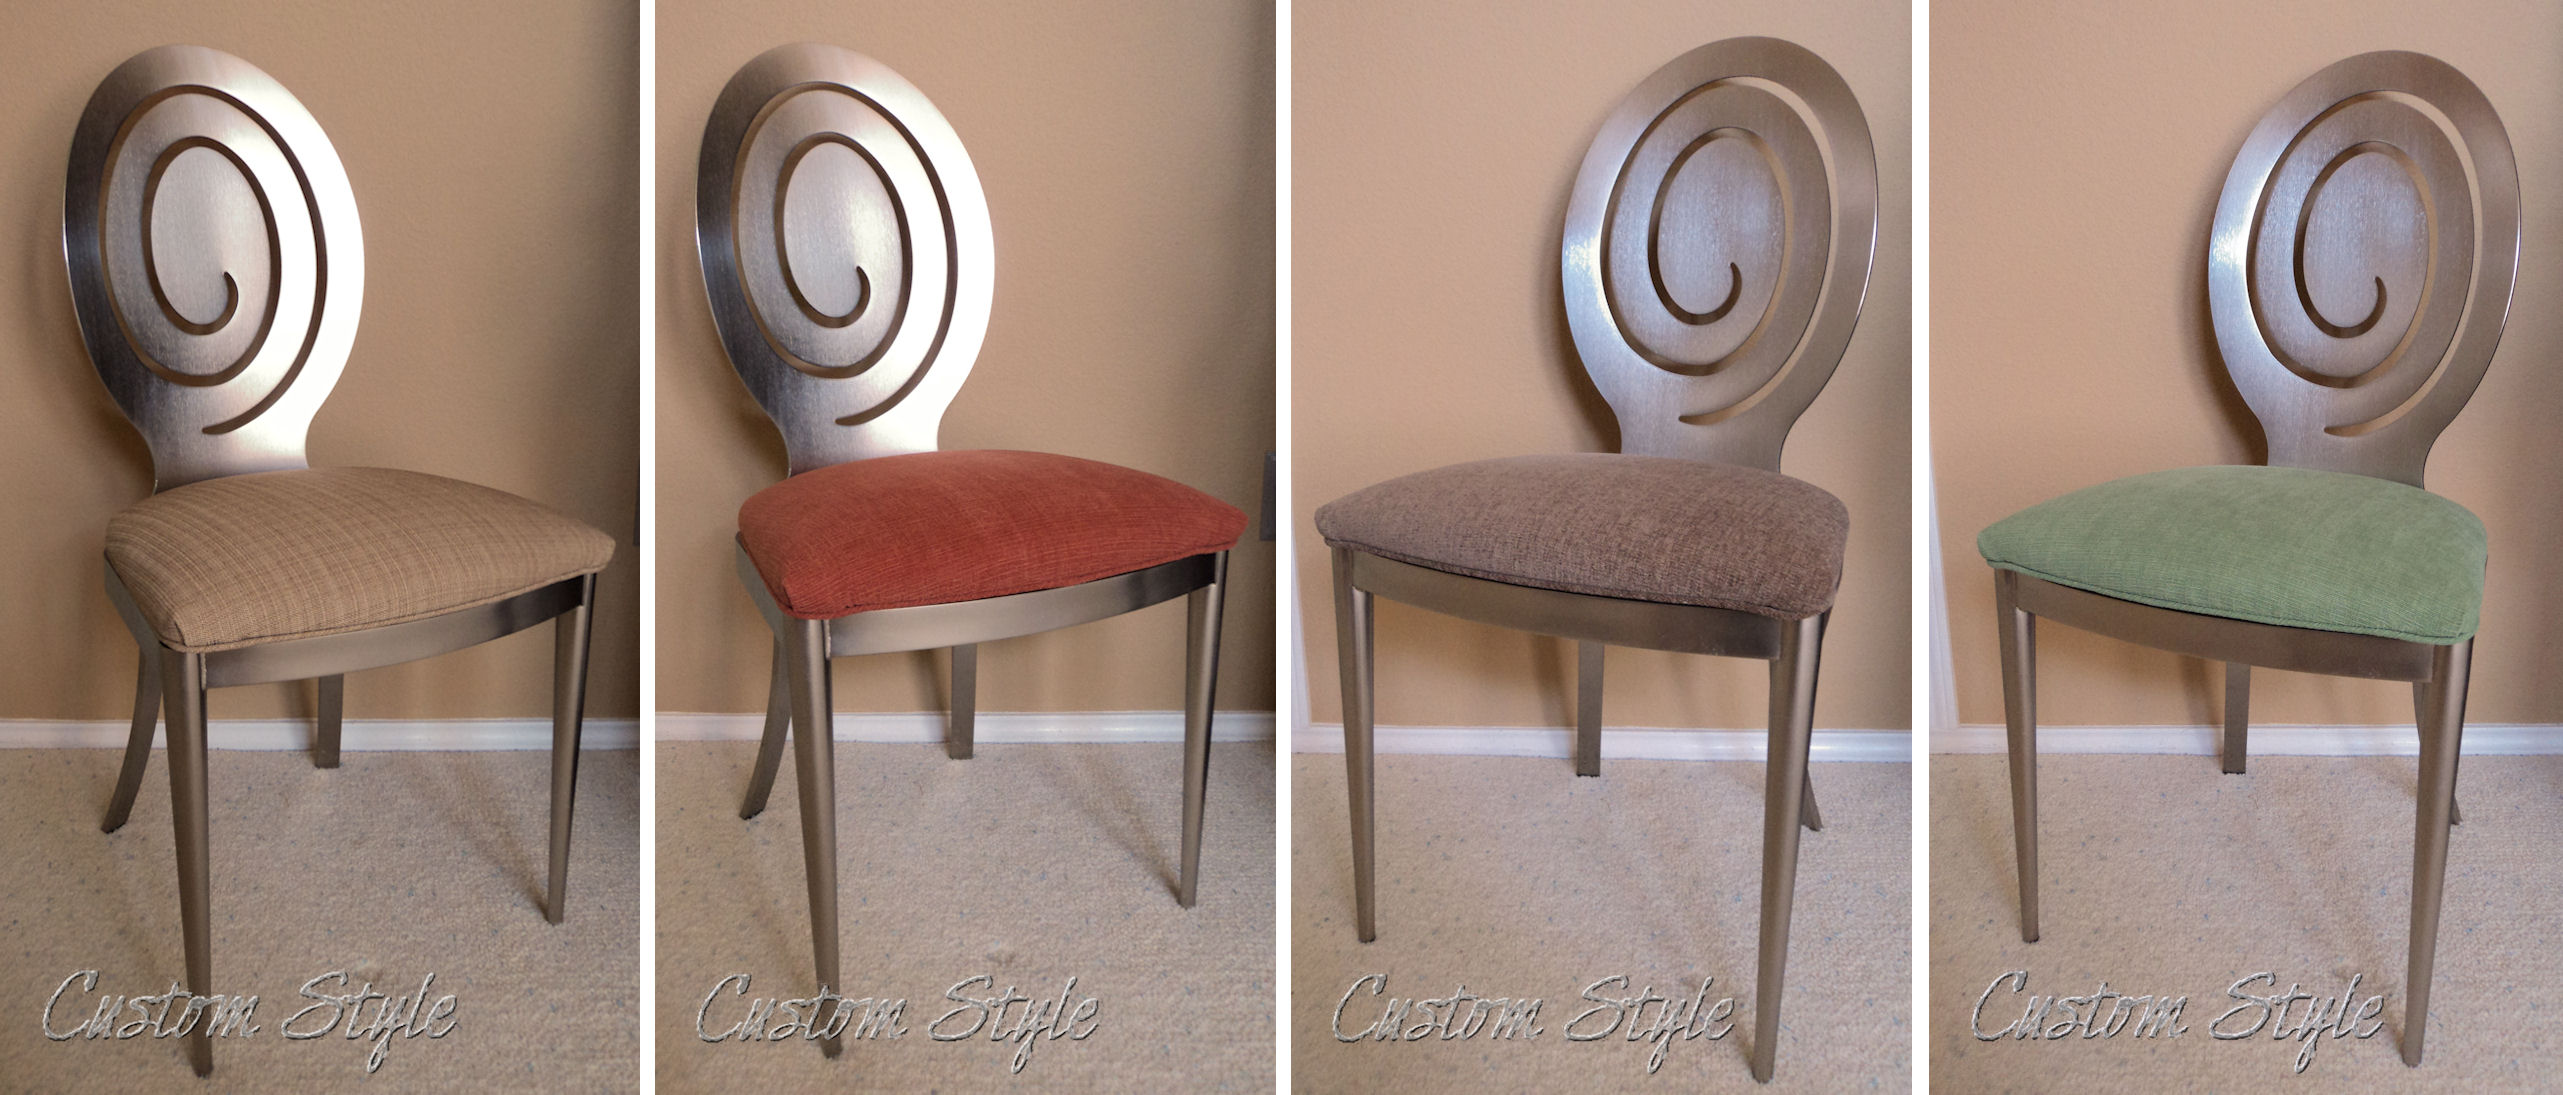 Reupholstering Dining Chair Cushions Custom Style